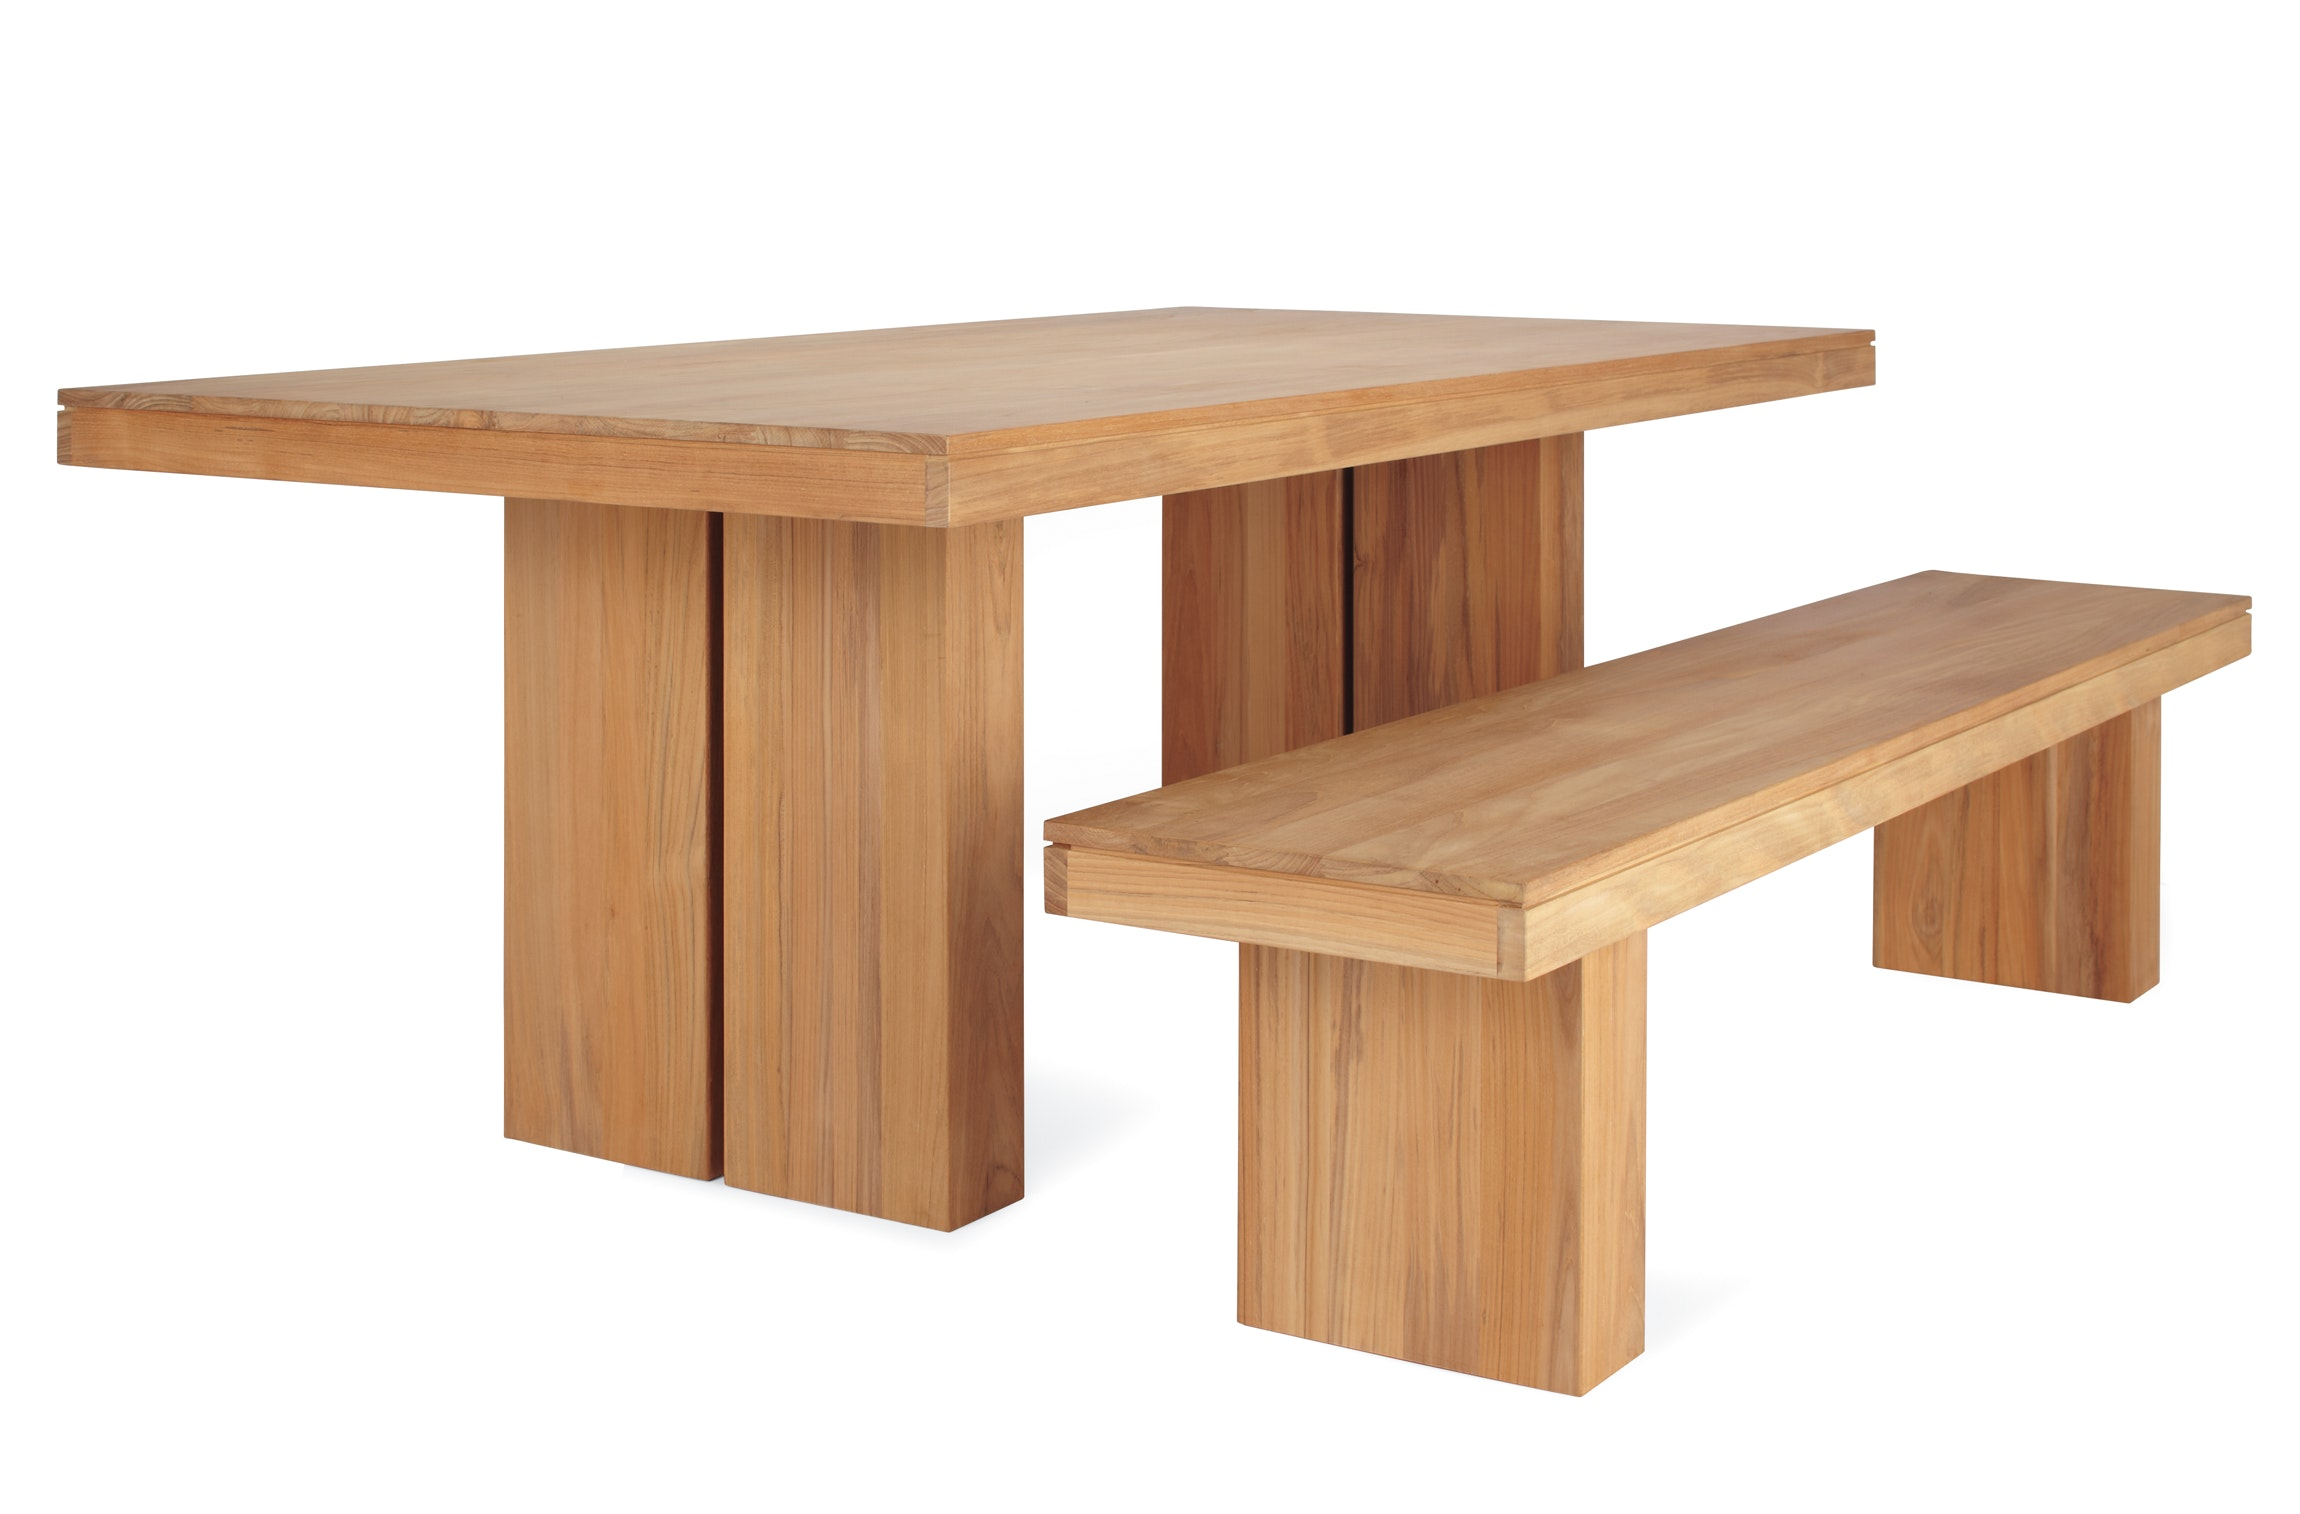 Kayu Teak Dining Table Design Within Reach